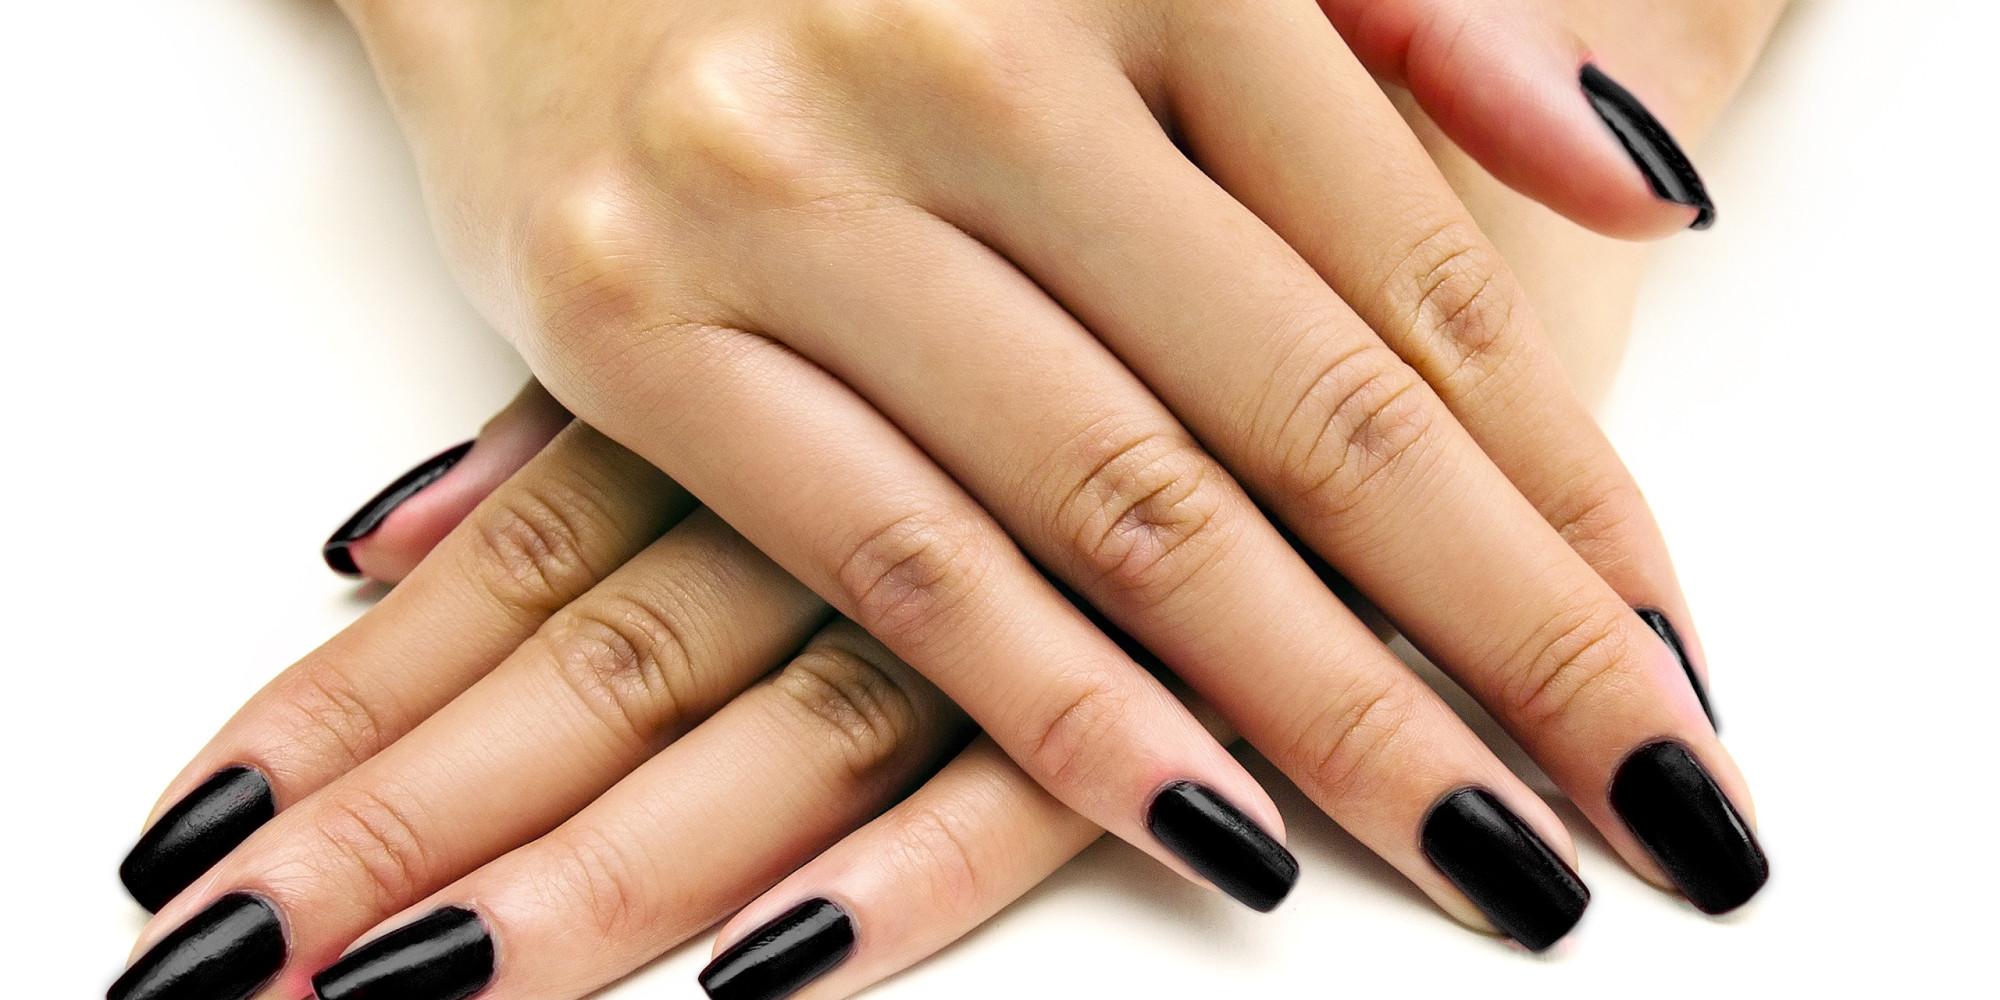 7 New Dark Nail Colors To Try This Fall | HuffPost